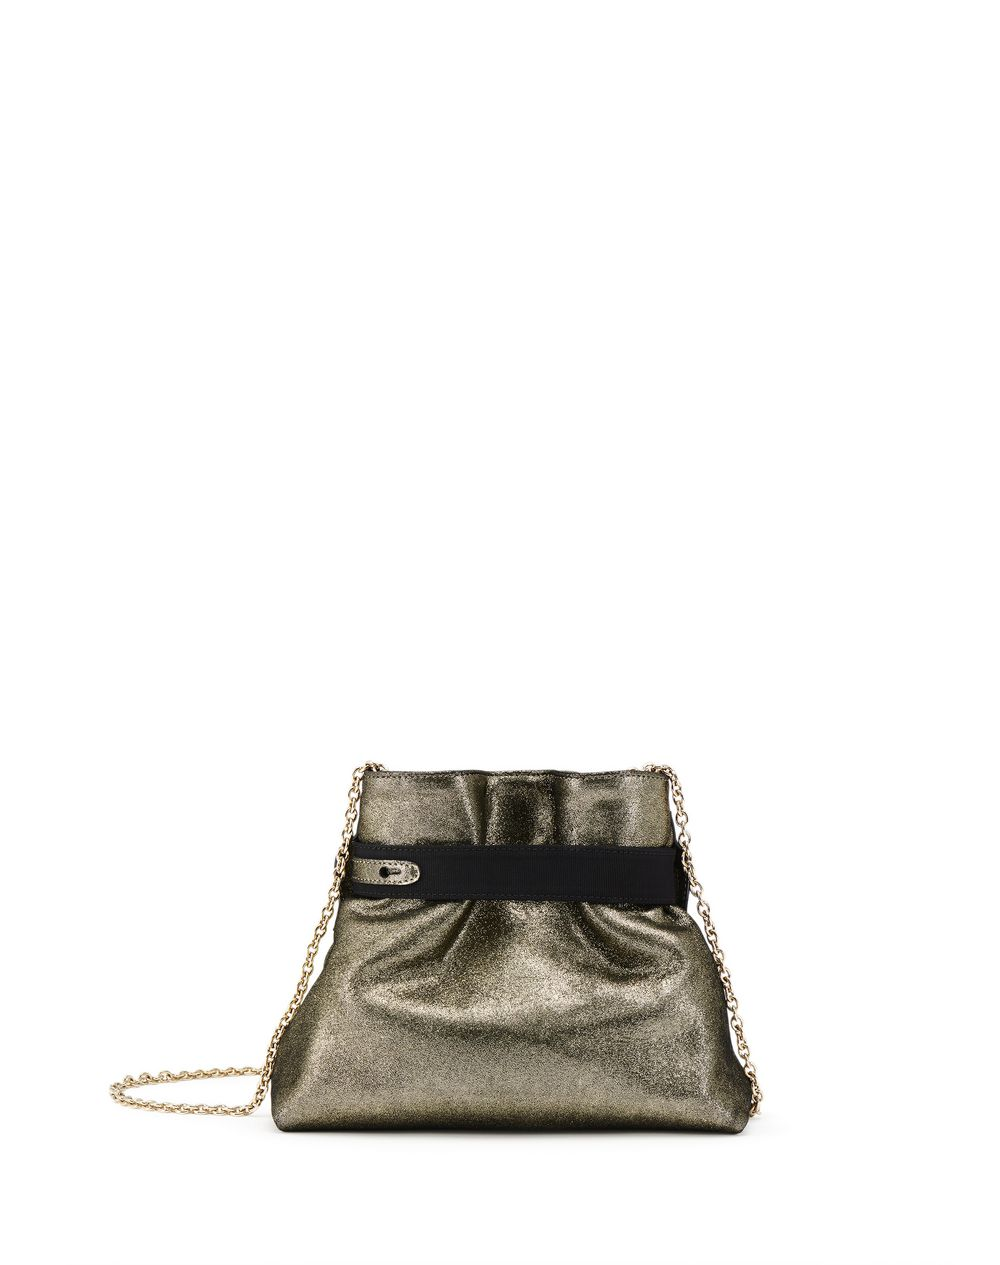 V SMALL HOBO BAG - Lanvin